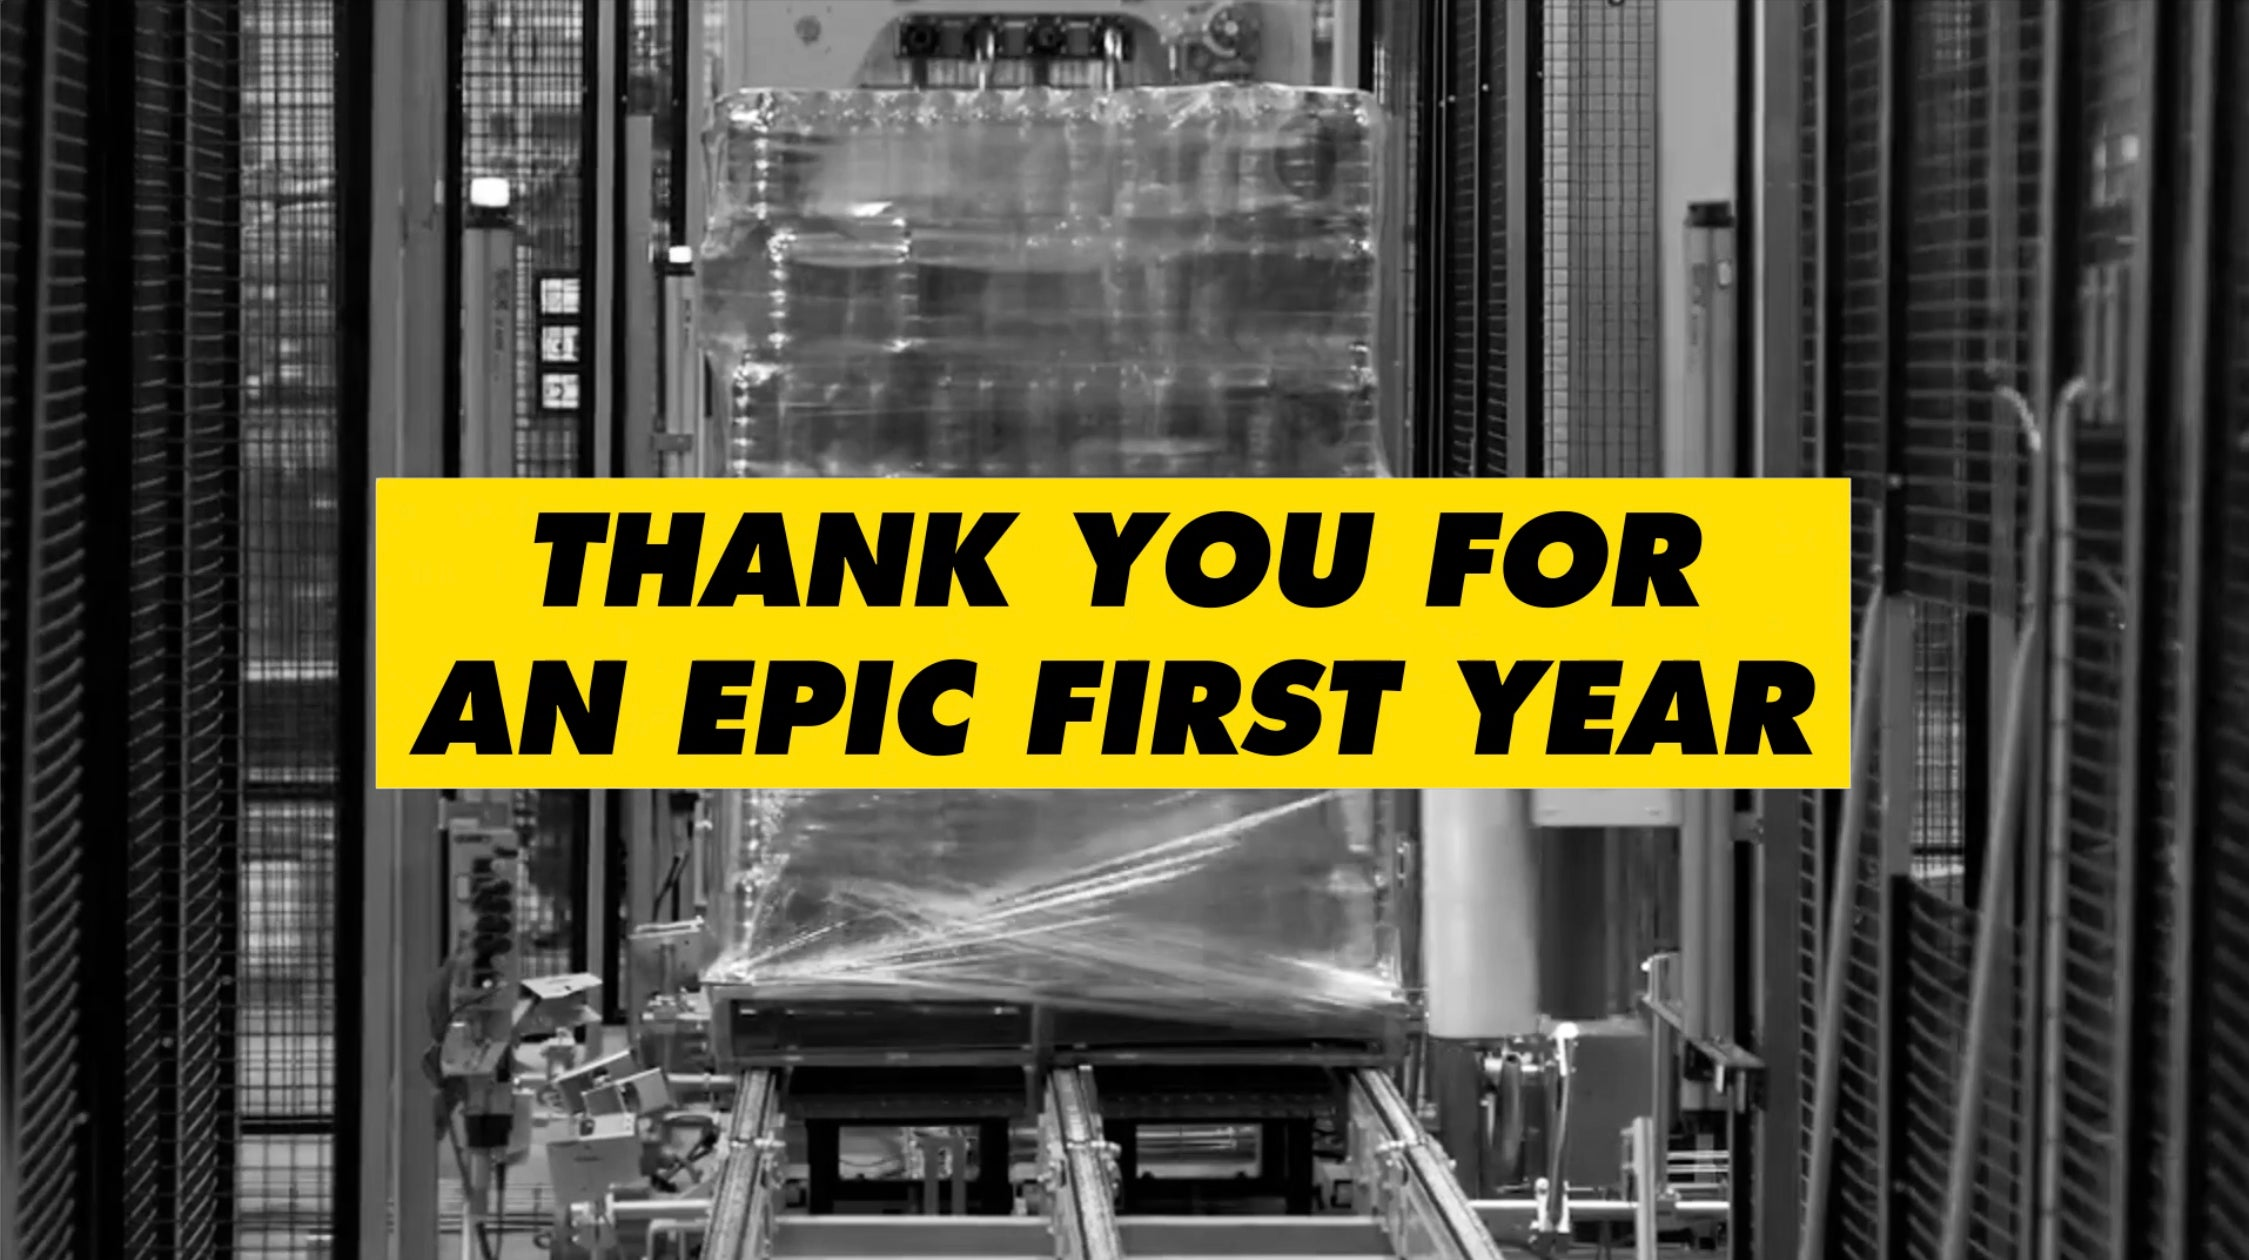 Thank You For an Epic First Year